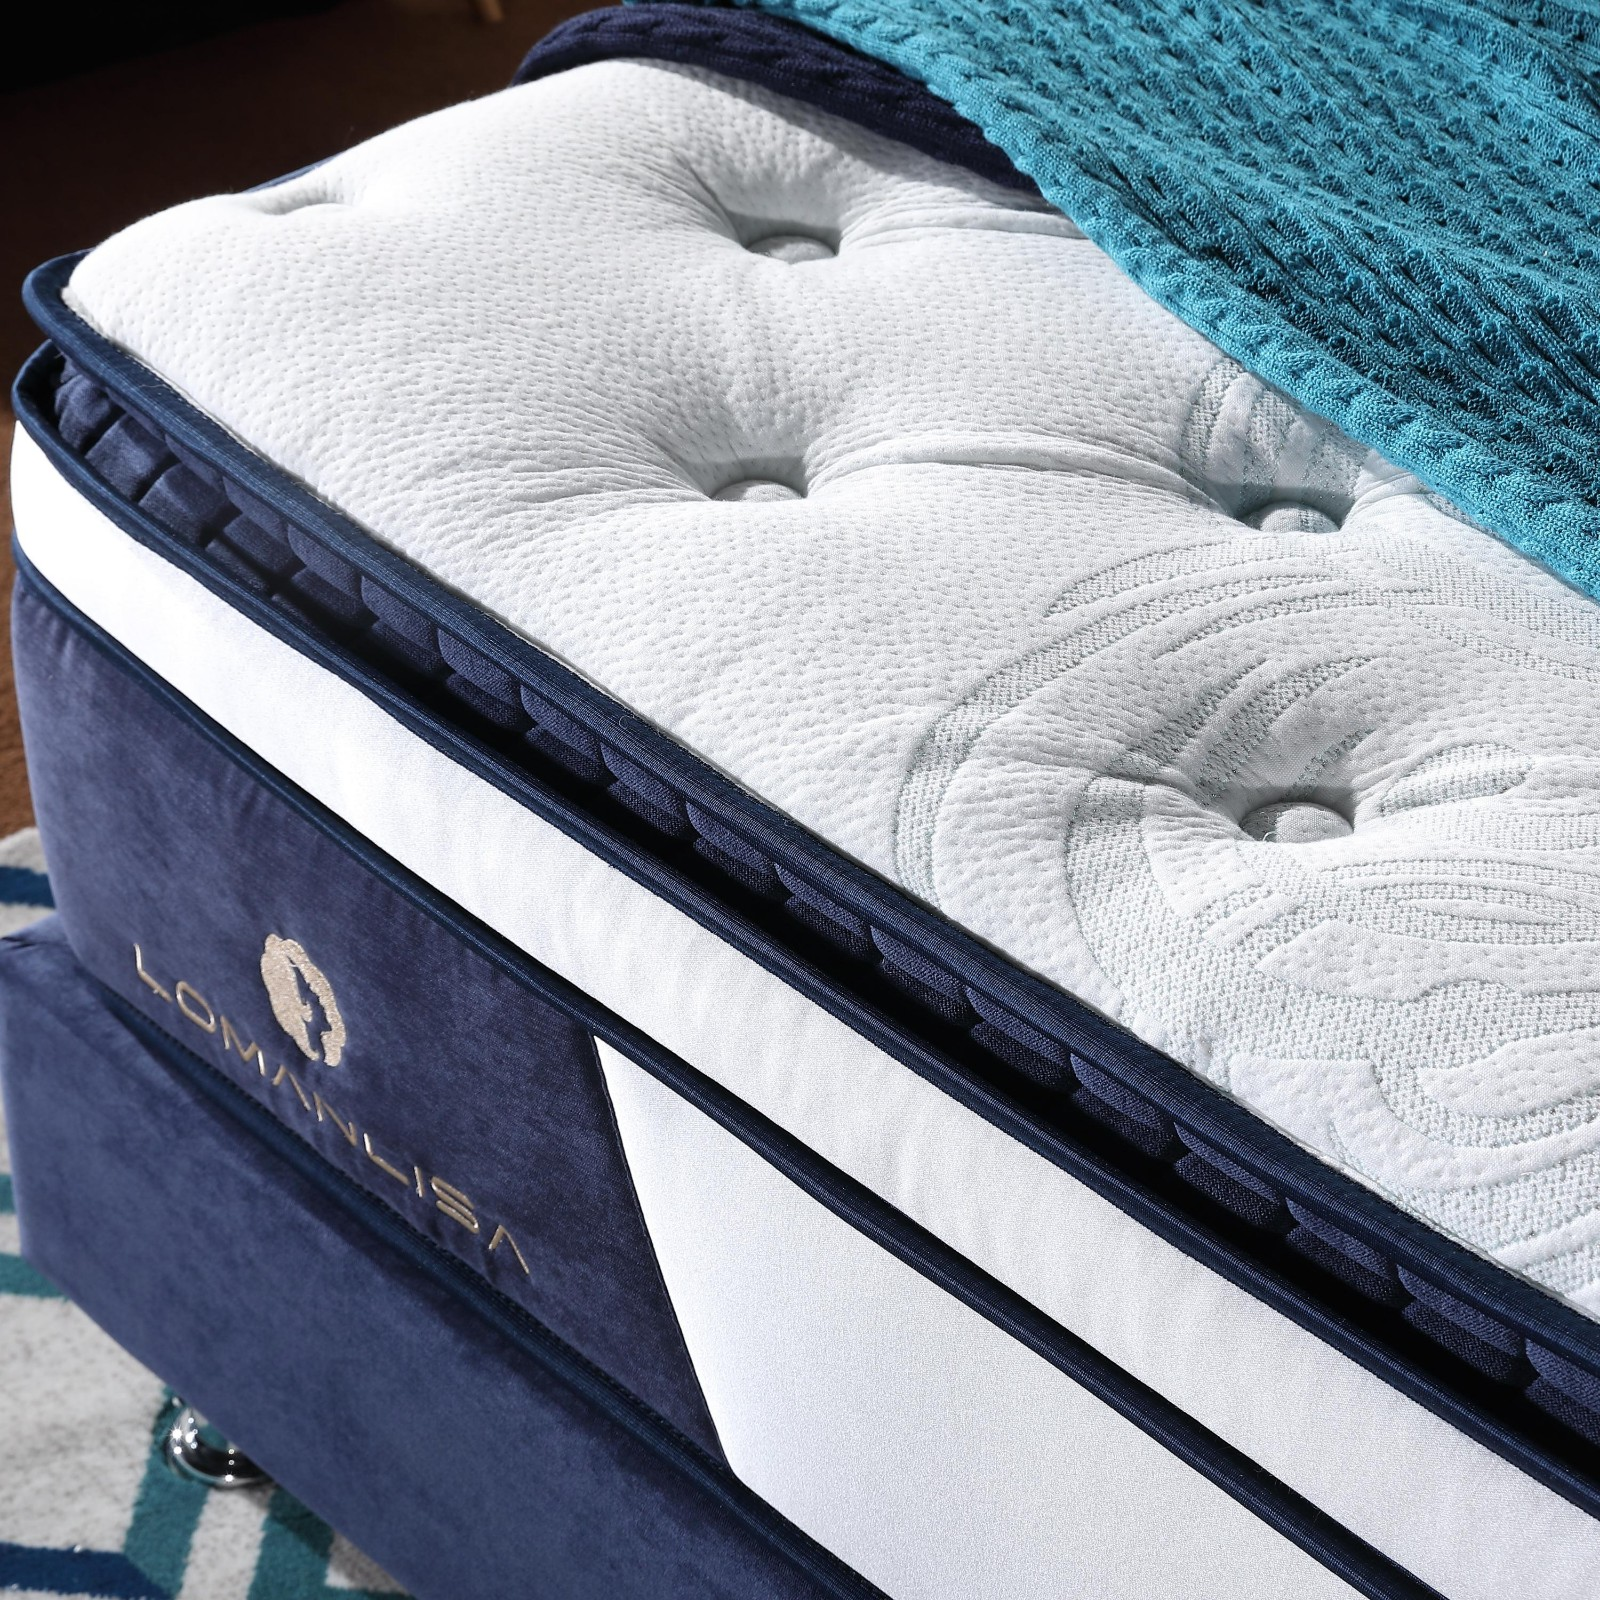 JLH comfortable cradle mattress-3